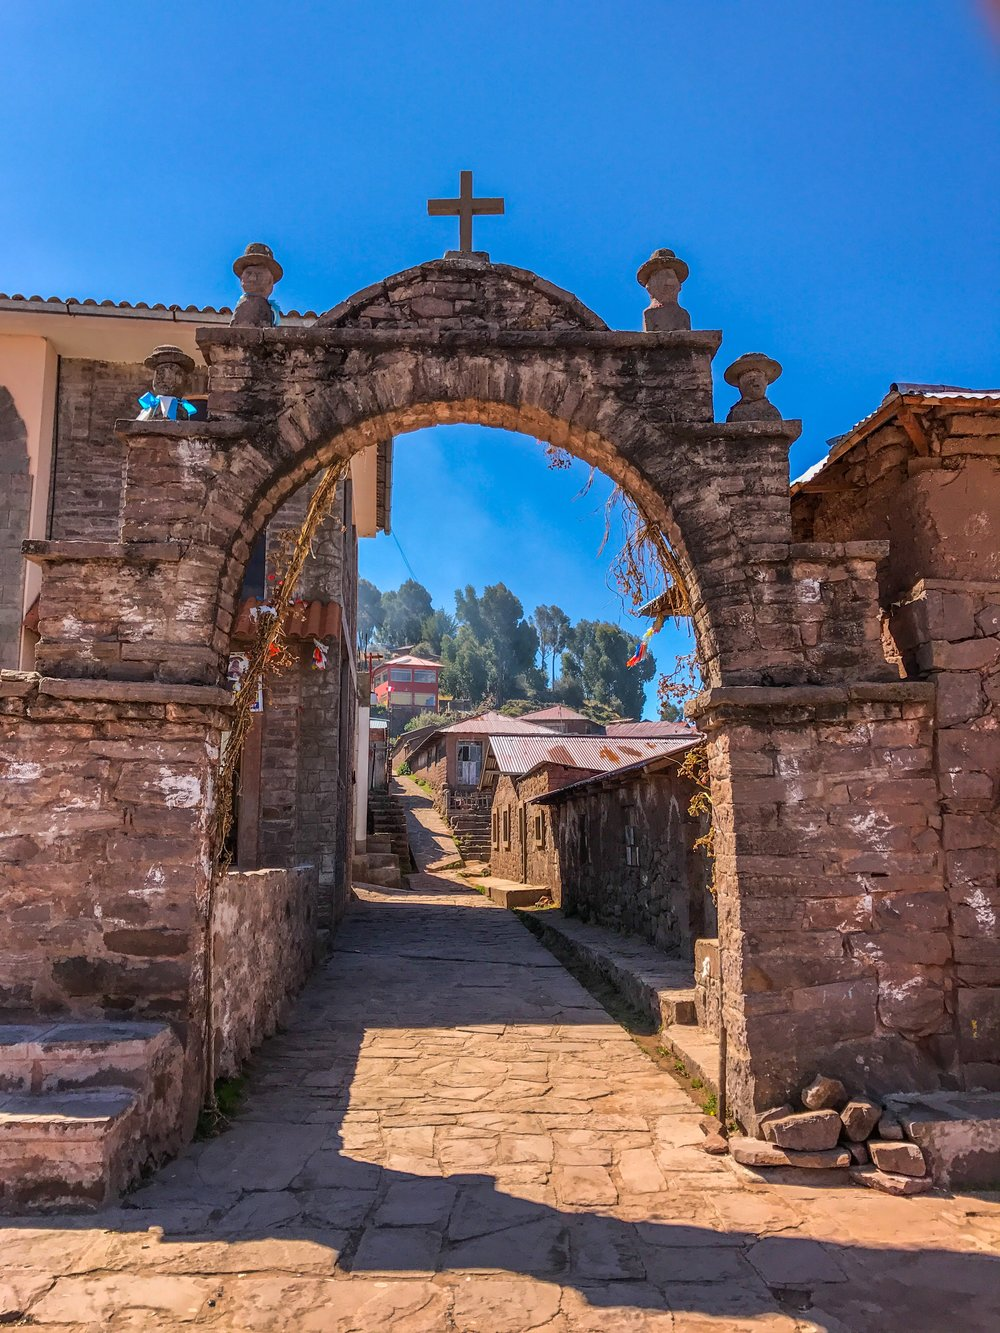 The entrance to Taquile's town square